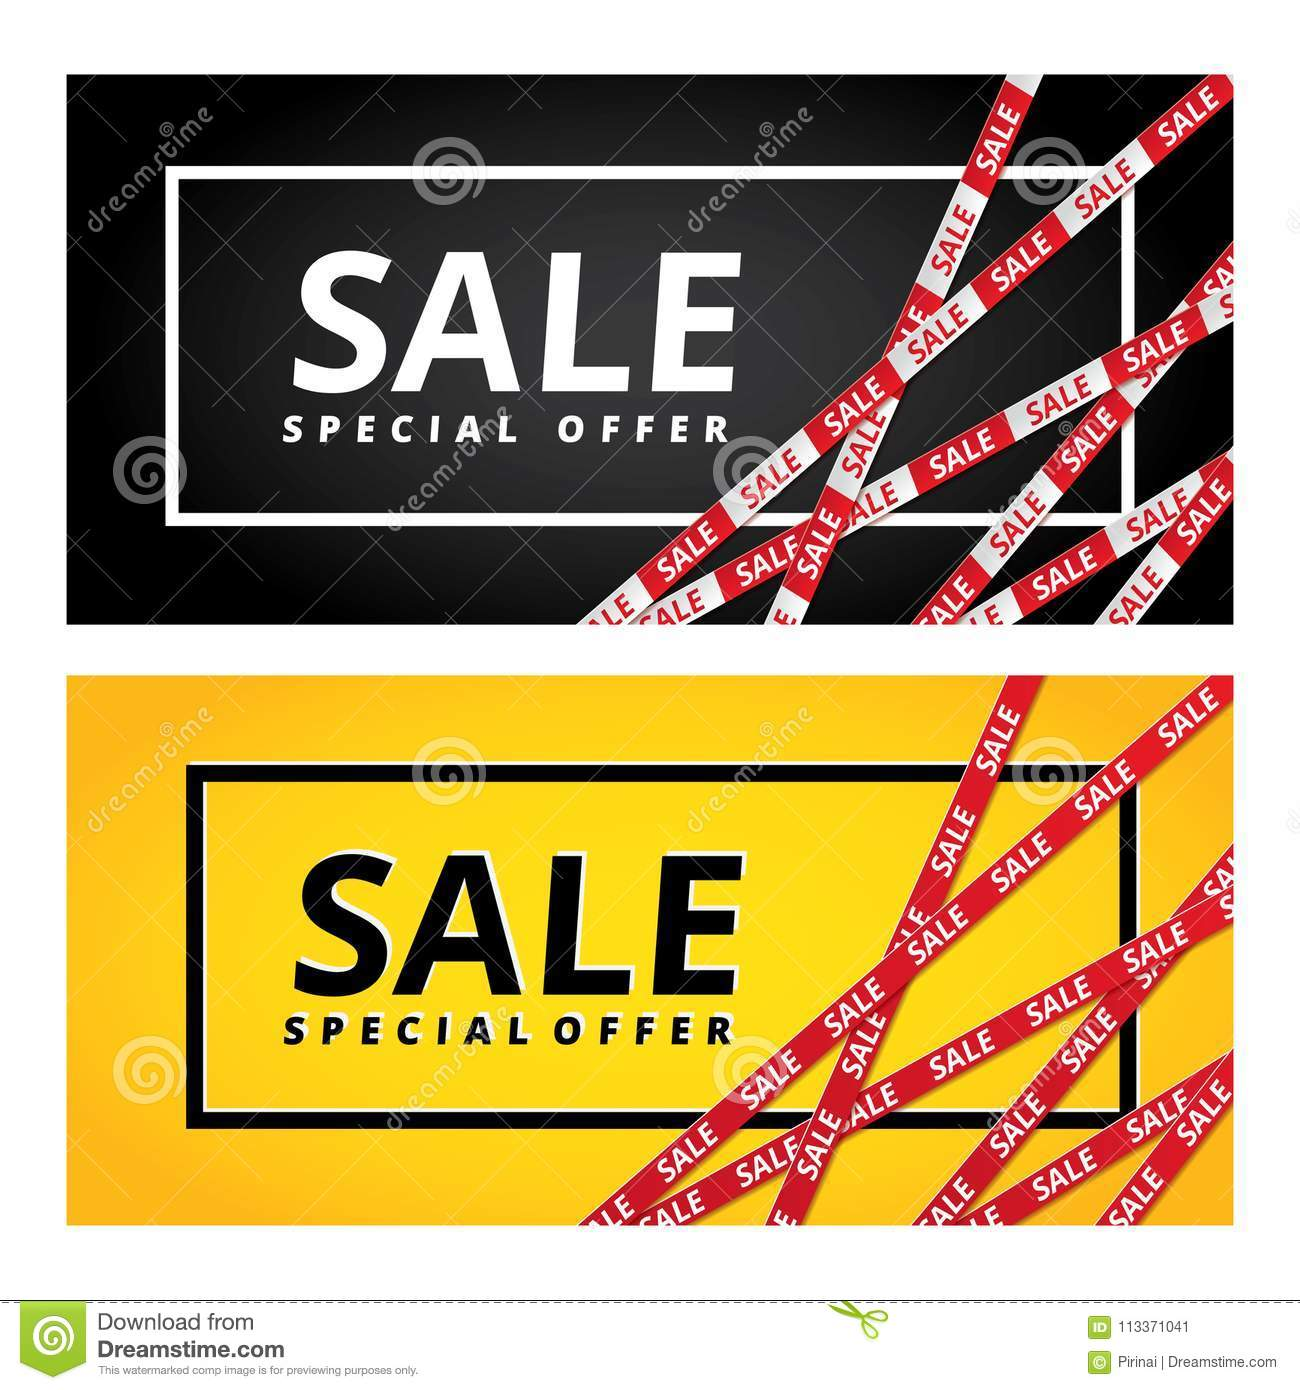 4750c508a0 Black friday Yellow sale tape ribbon card background. Special offer red  tape poster